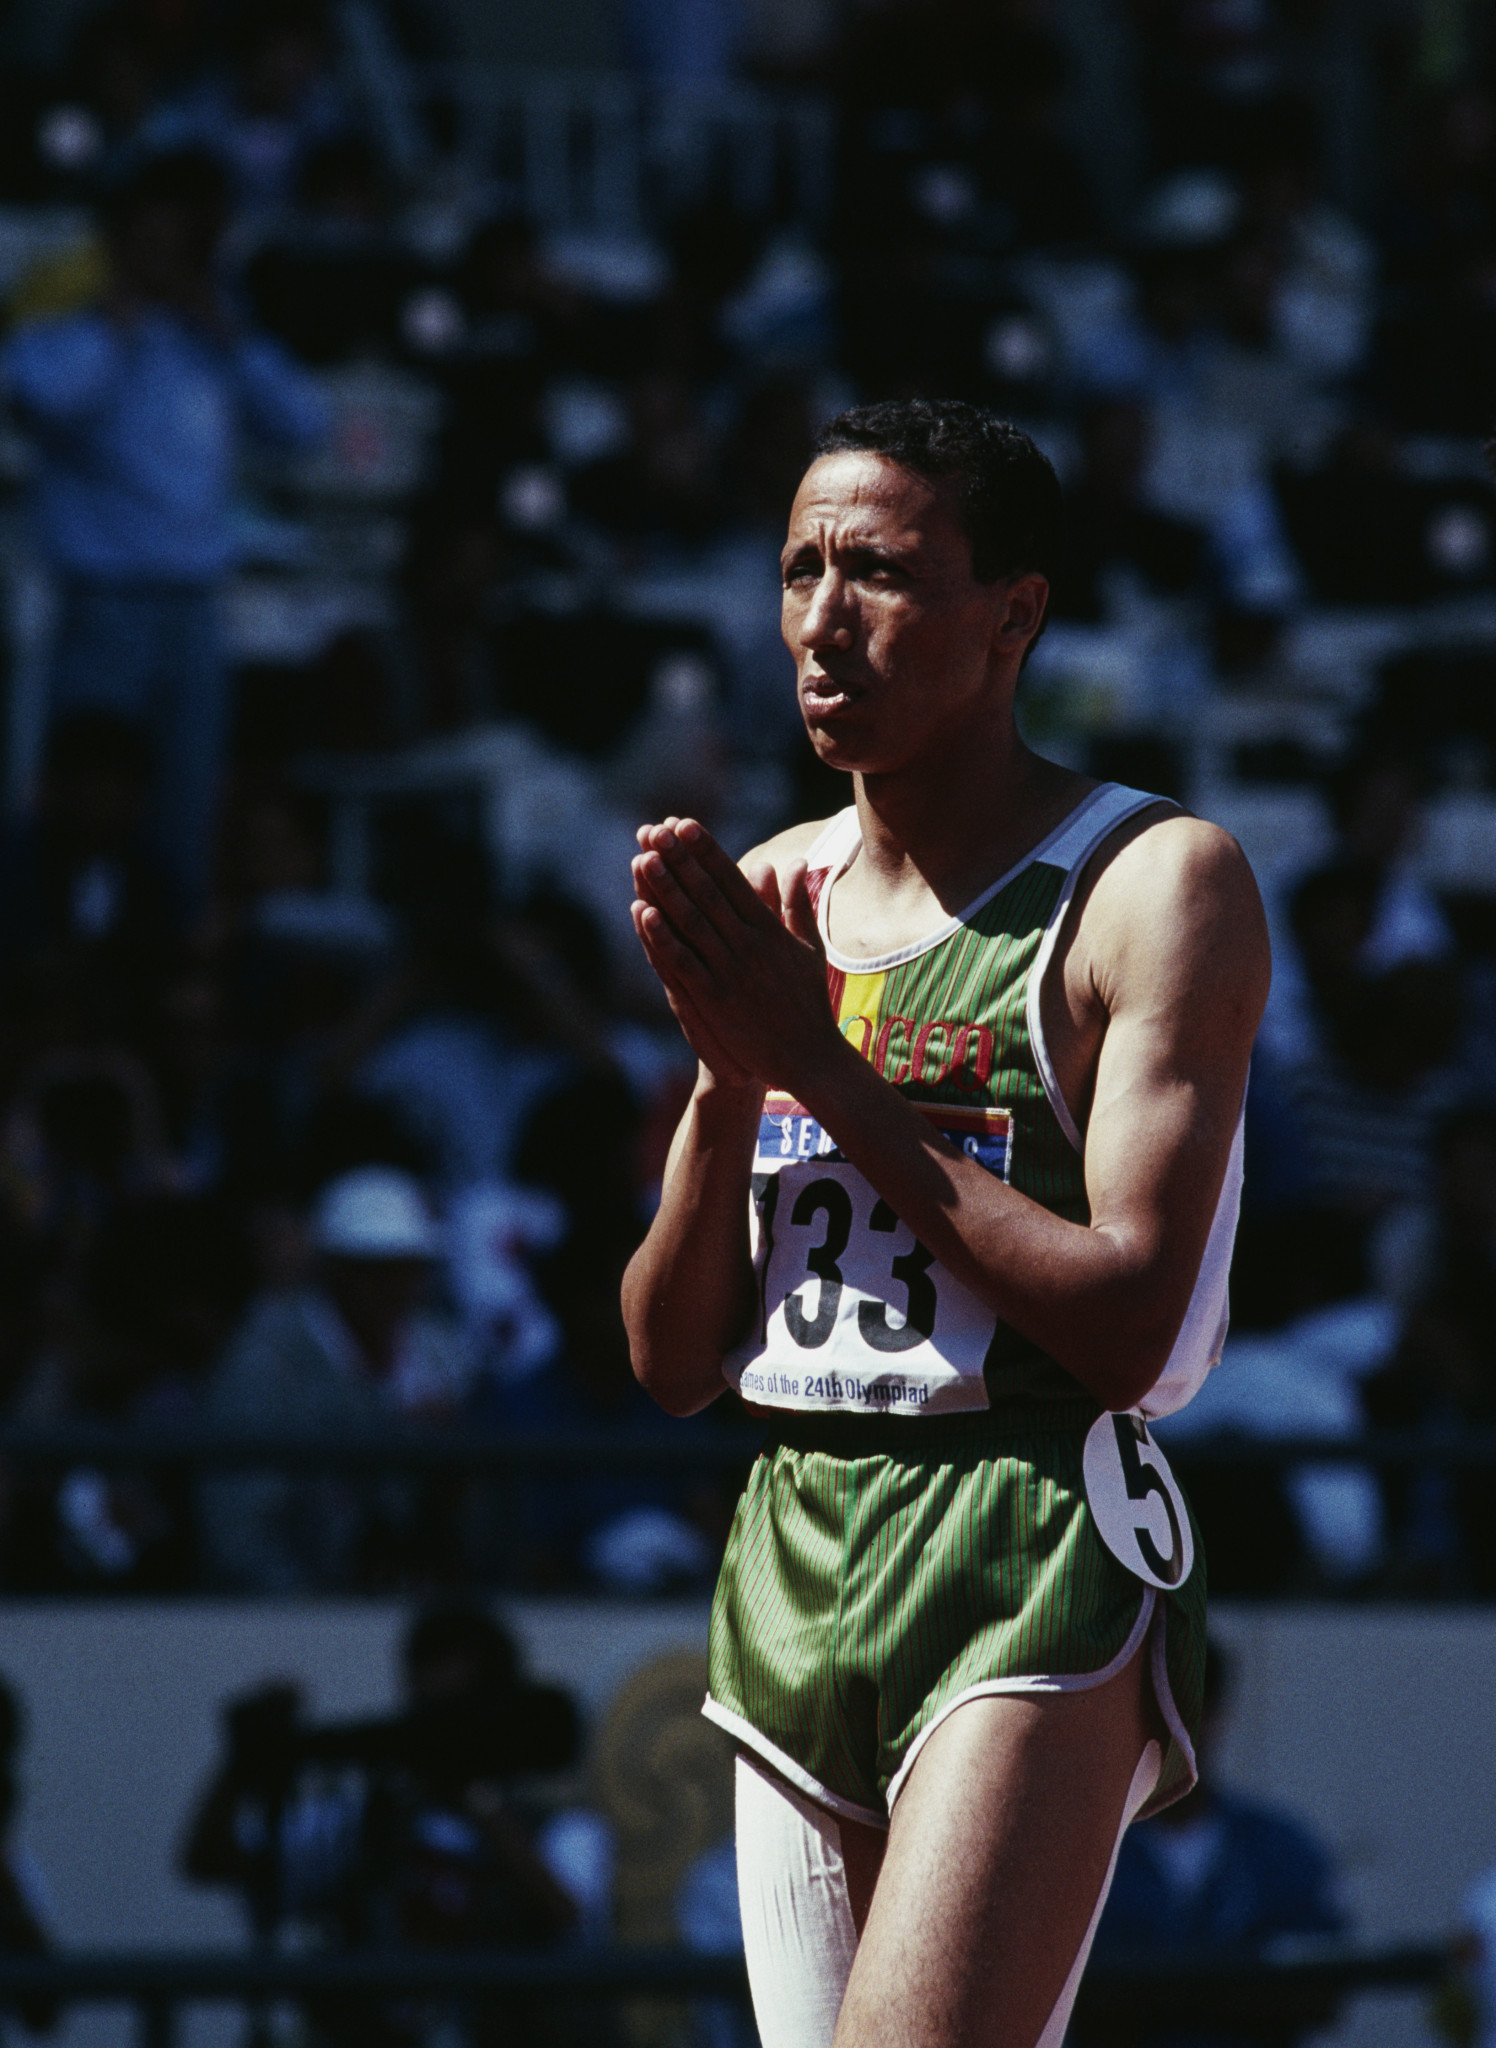 The investigation heard from 1984 Olympic 5,000 metres champion Said Aouita ©Getty Images